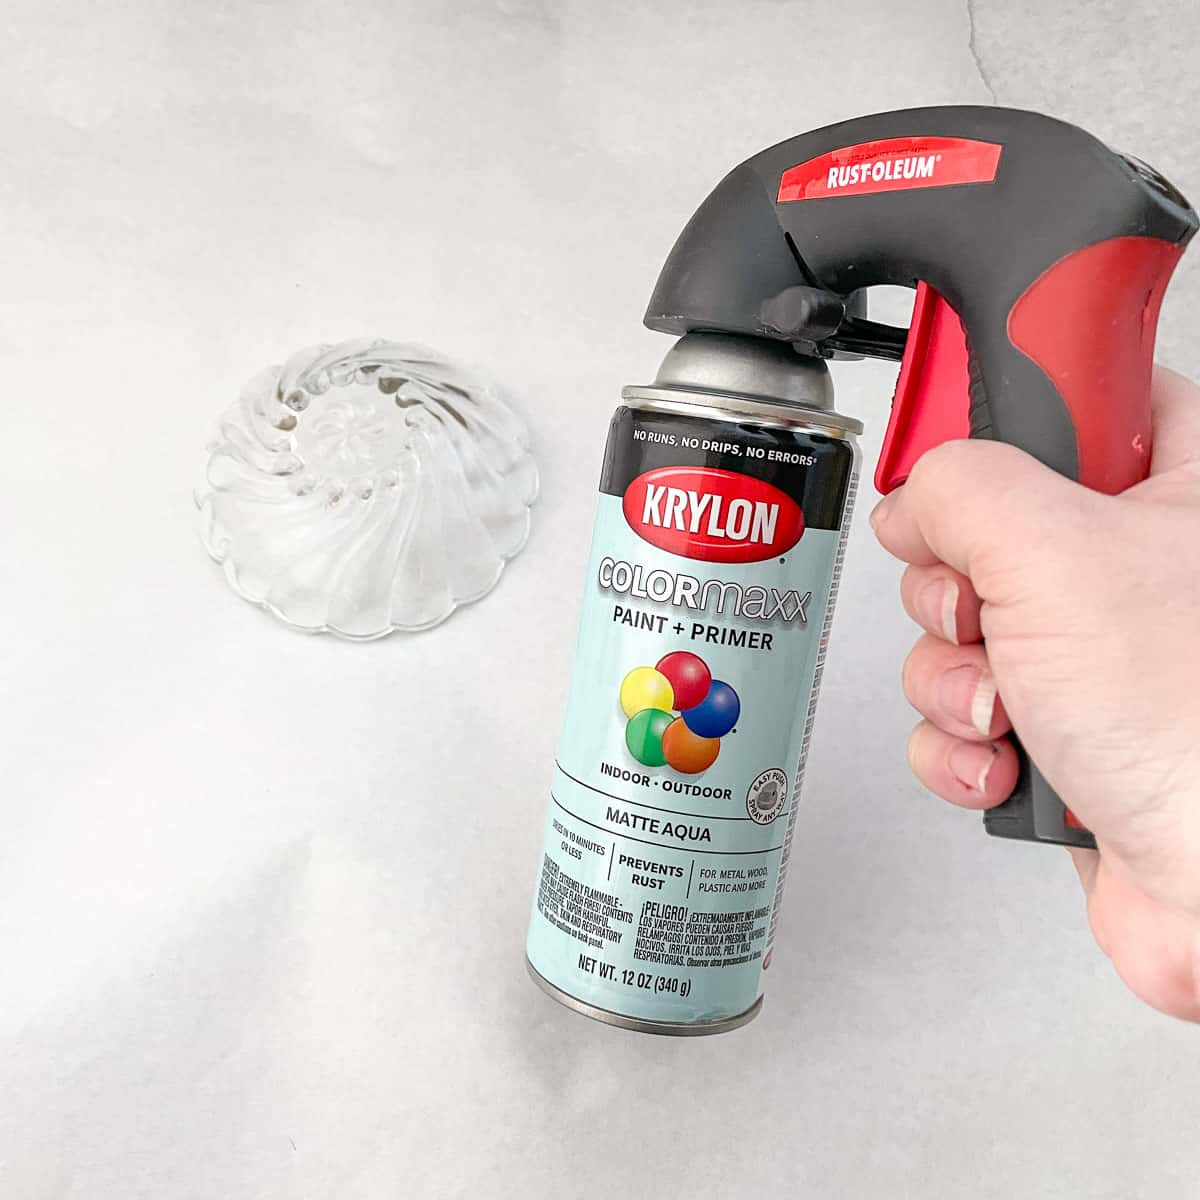 spray paint can handle for better control when painting glass